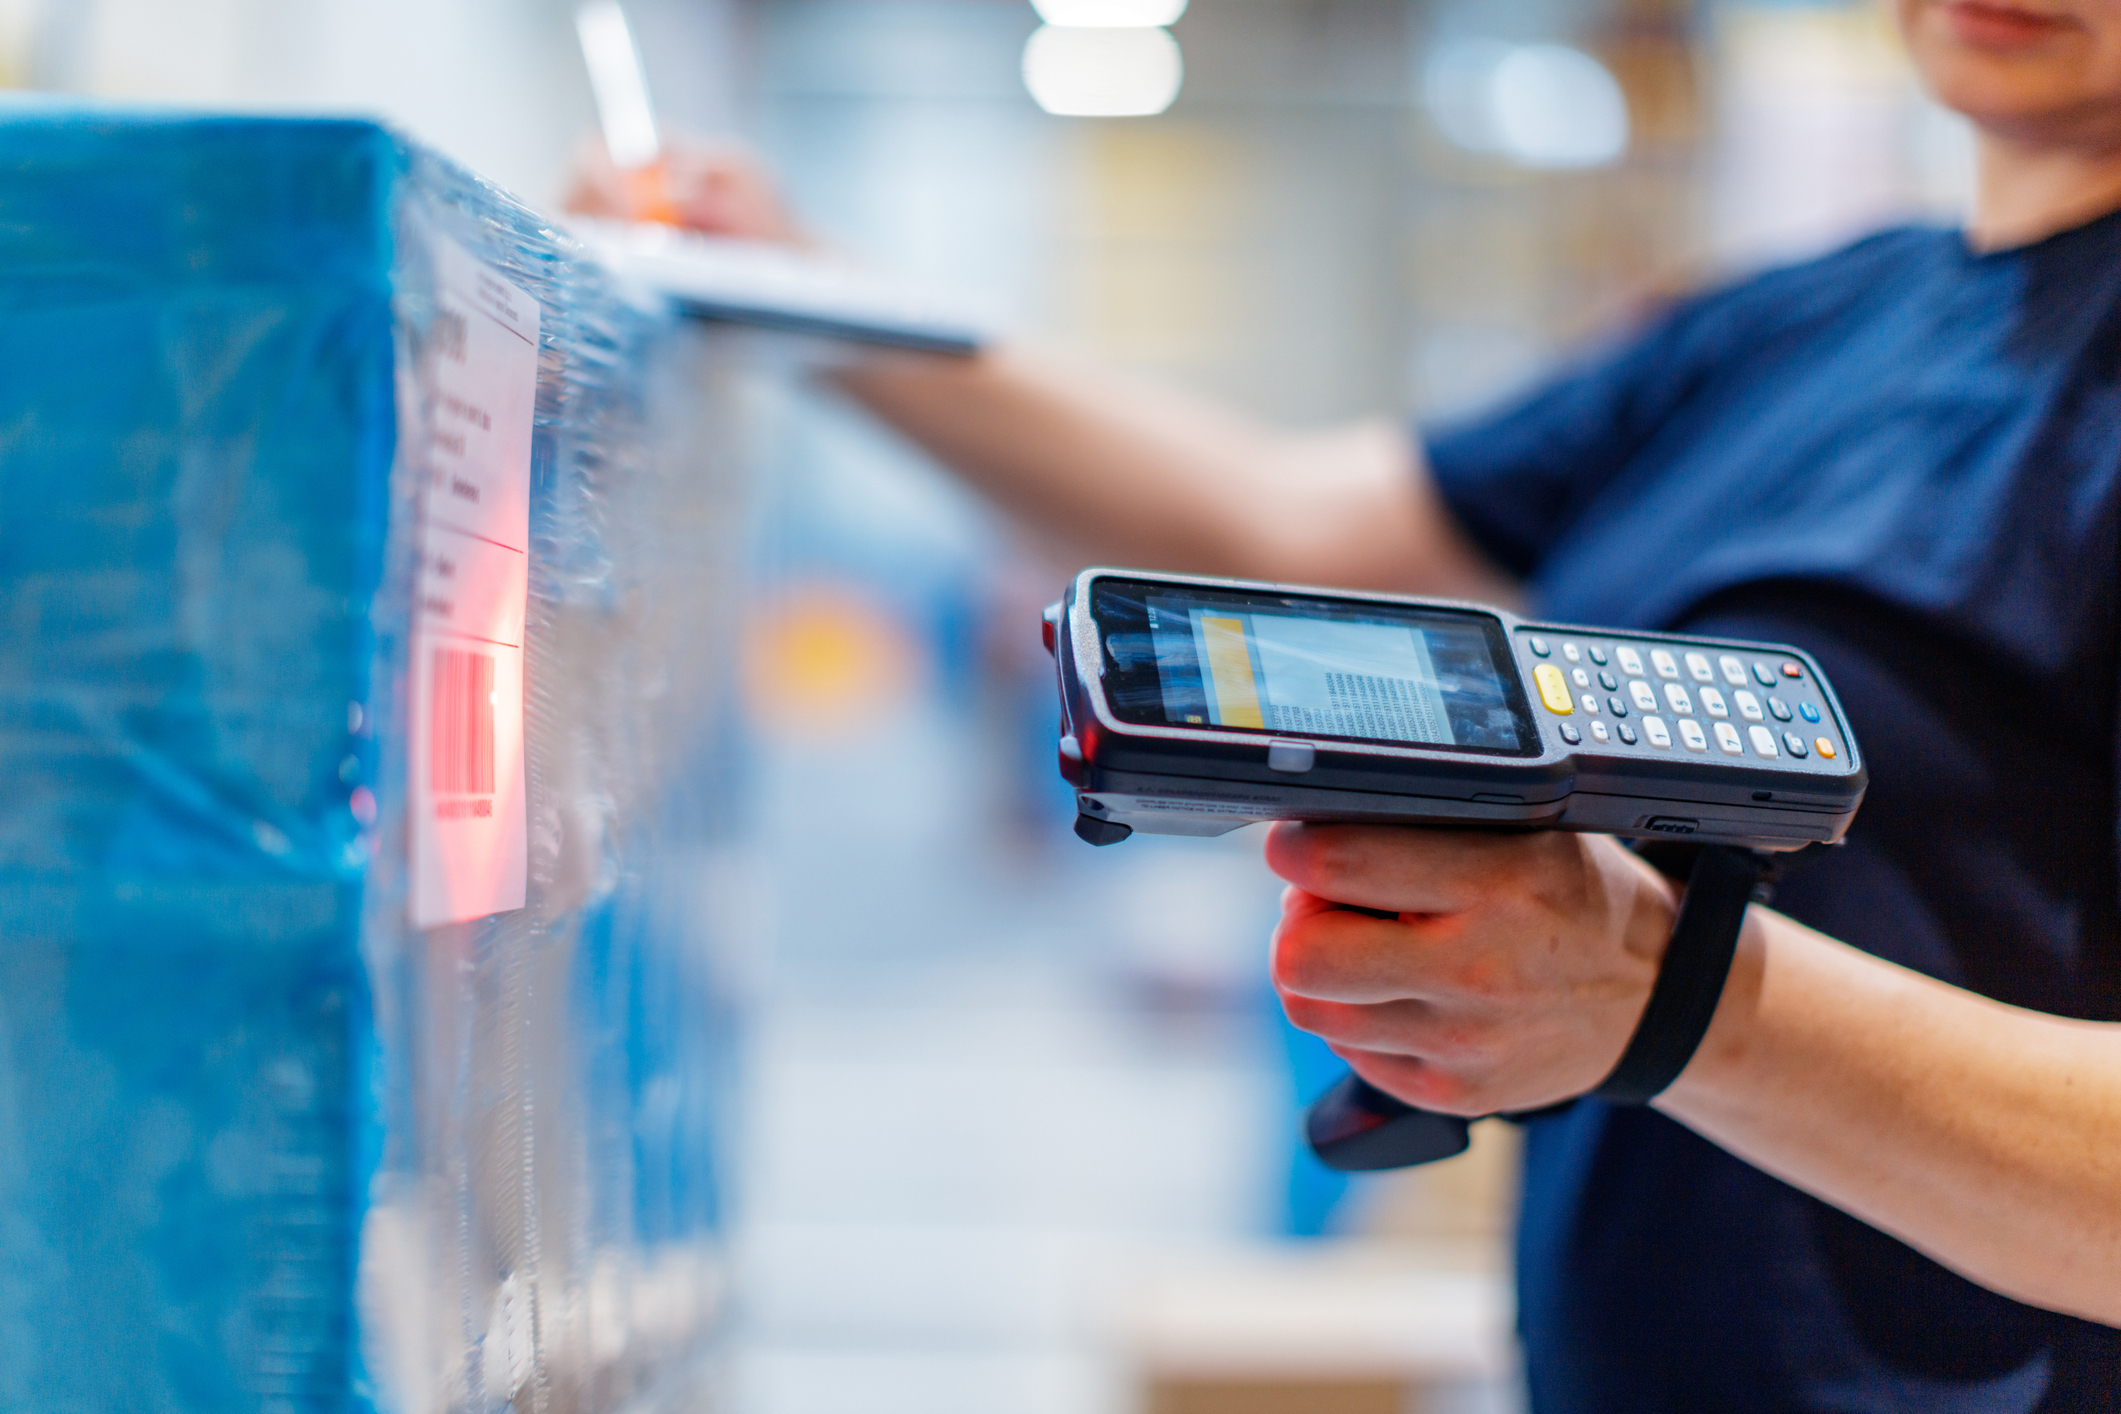 Person holding a barcoding scanner with digital input pad scanning a label on a stack of products